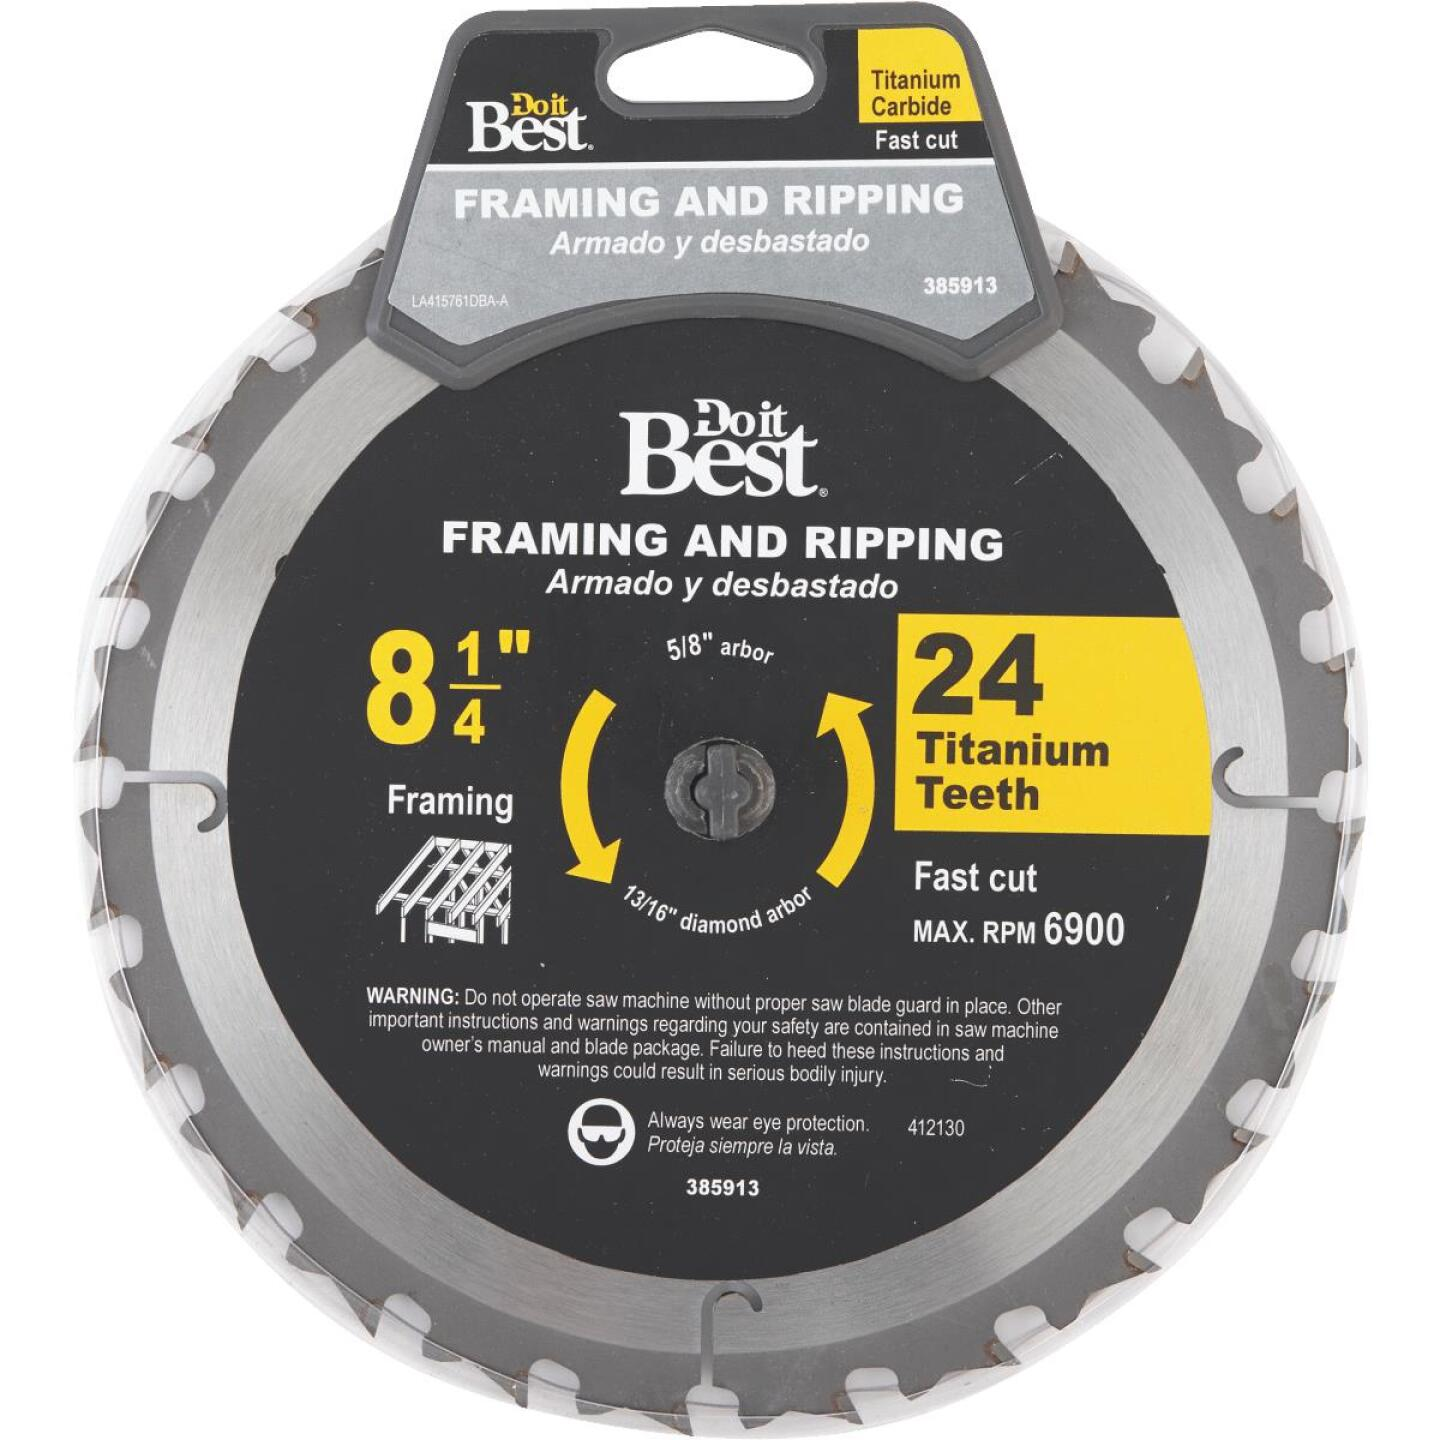 Do it Best Professional 8-1/4 In. 24-Tooth Framing Circular Saw Blade Image 1